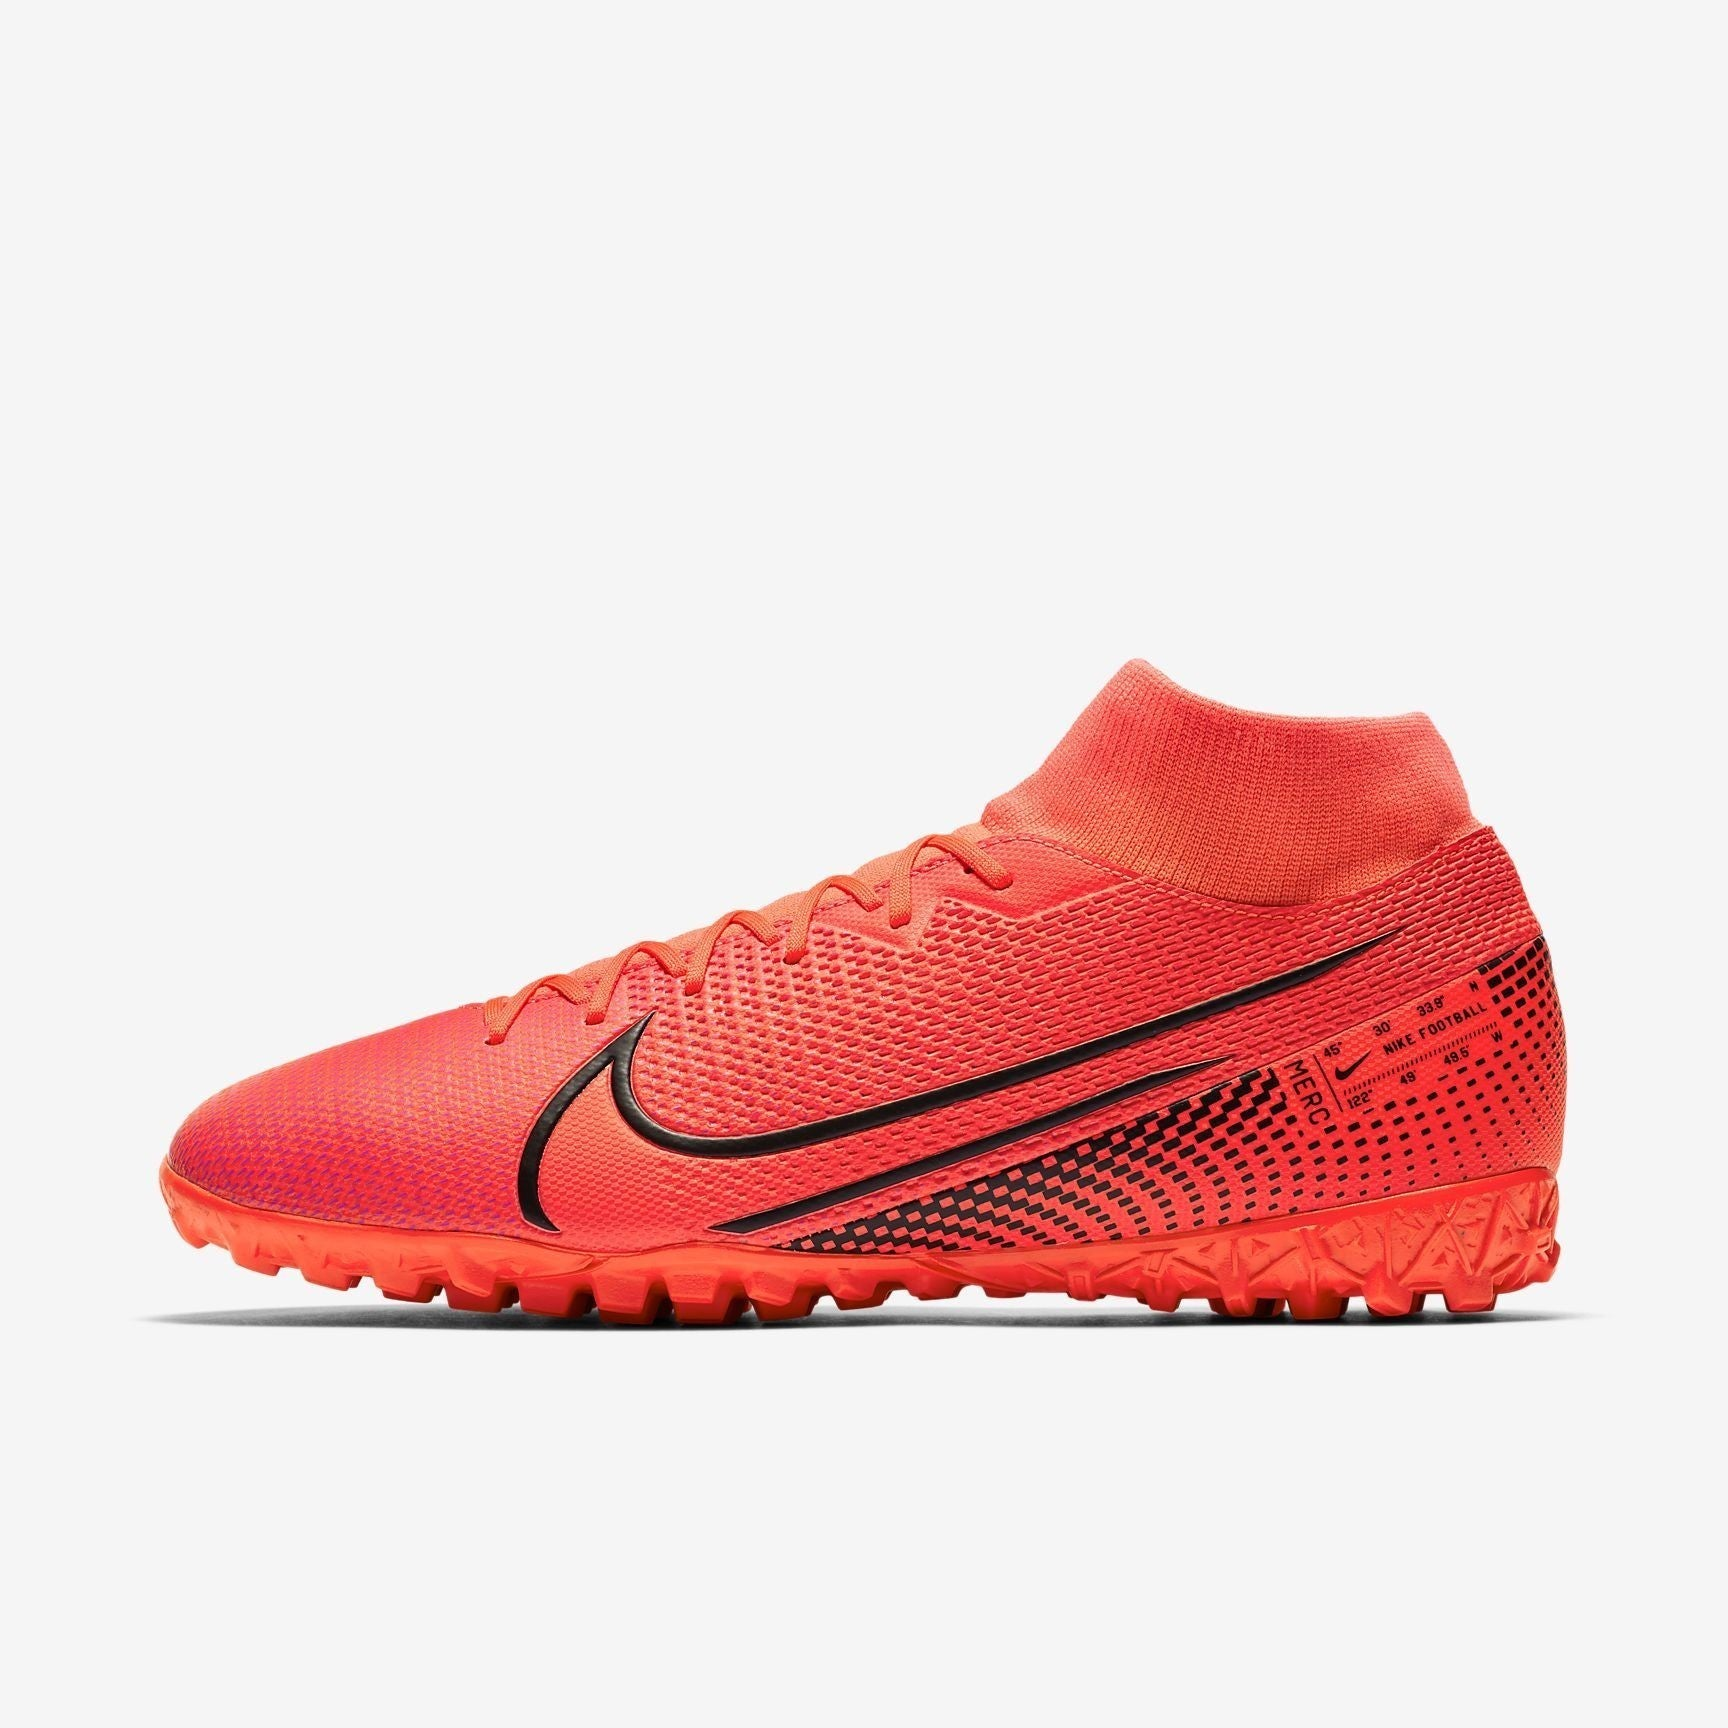 Men's Mercurial Superfly 7 Academy Turf Soccer Shoes